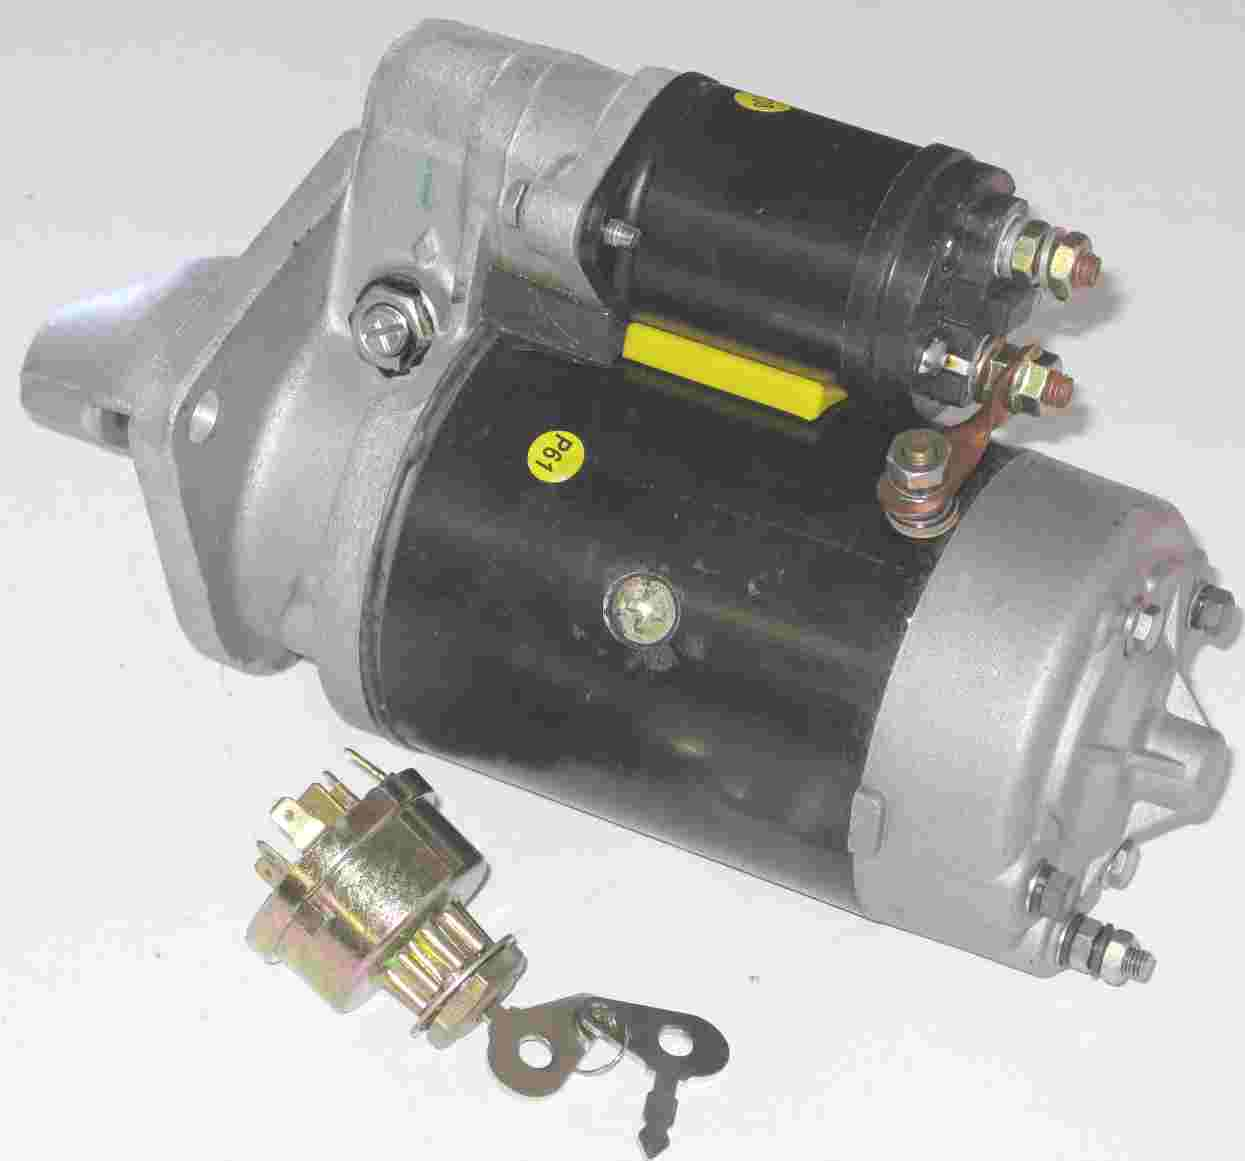 Wiring Diagram For Ford Starter : Wiring diagram for a ford starter relay the